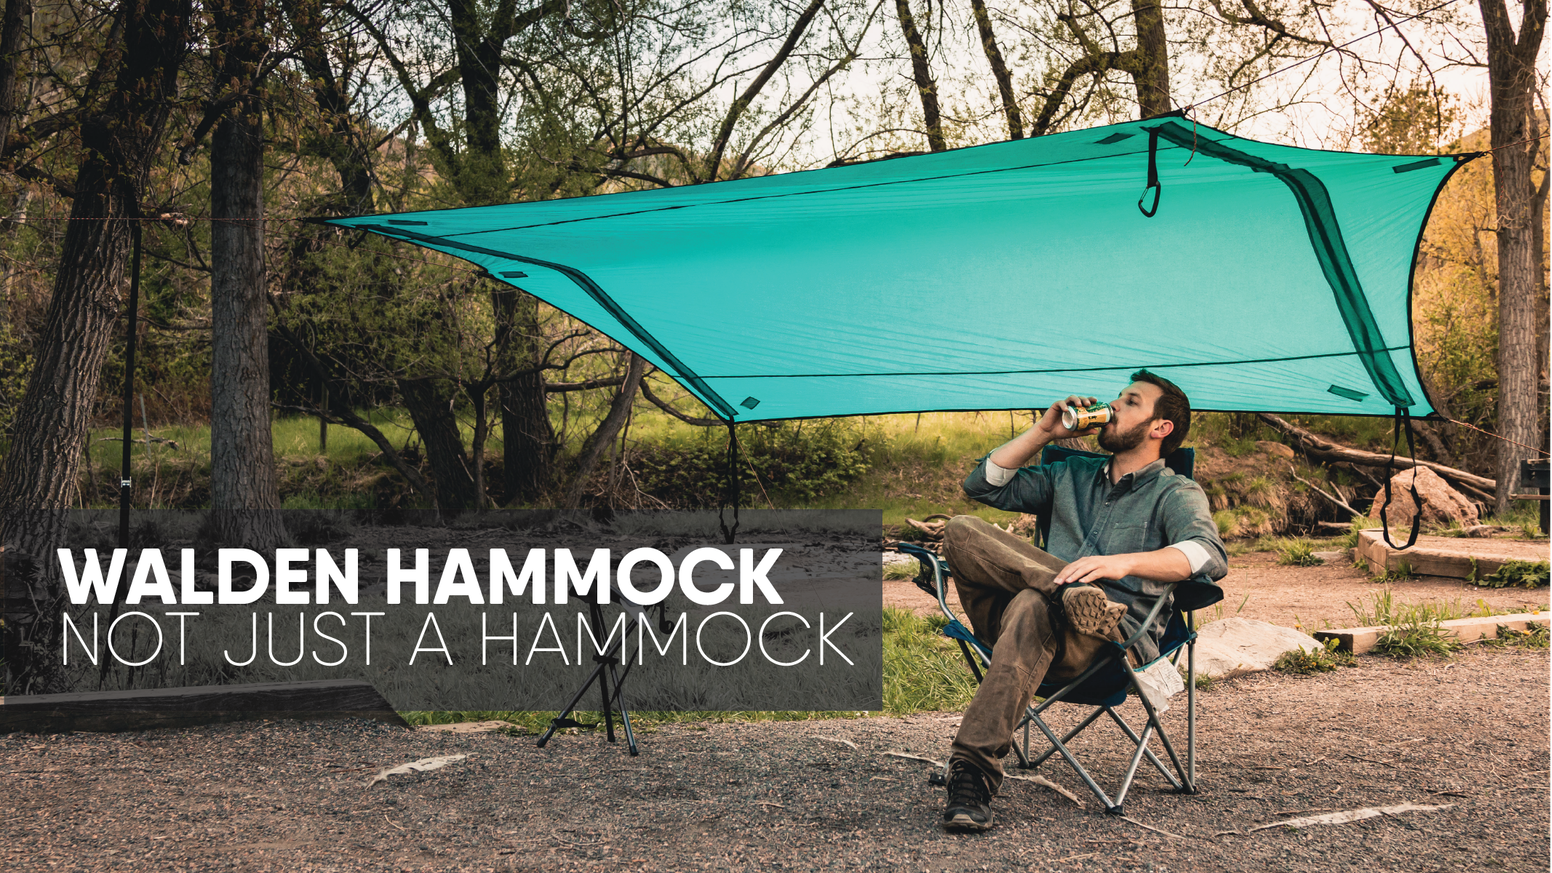 Walden Hammocks: Not just a hammock. Easily transforms from a hammock into multiple shelters, sun shade, or a wind block.